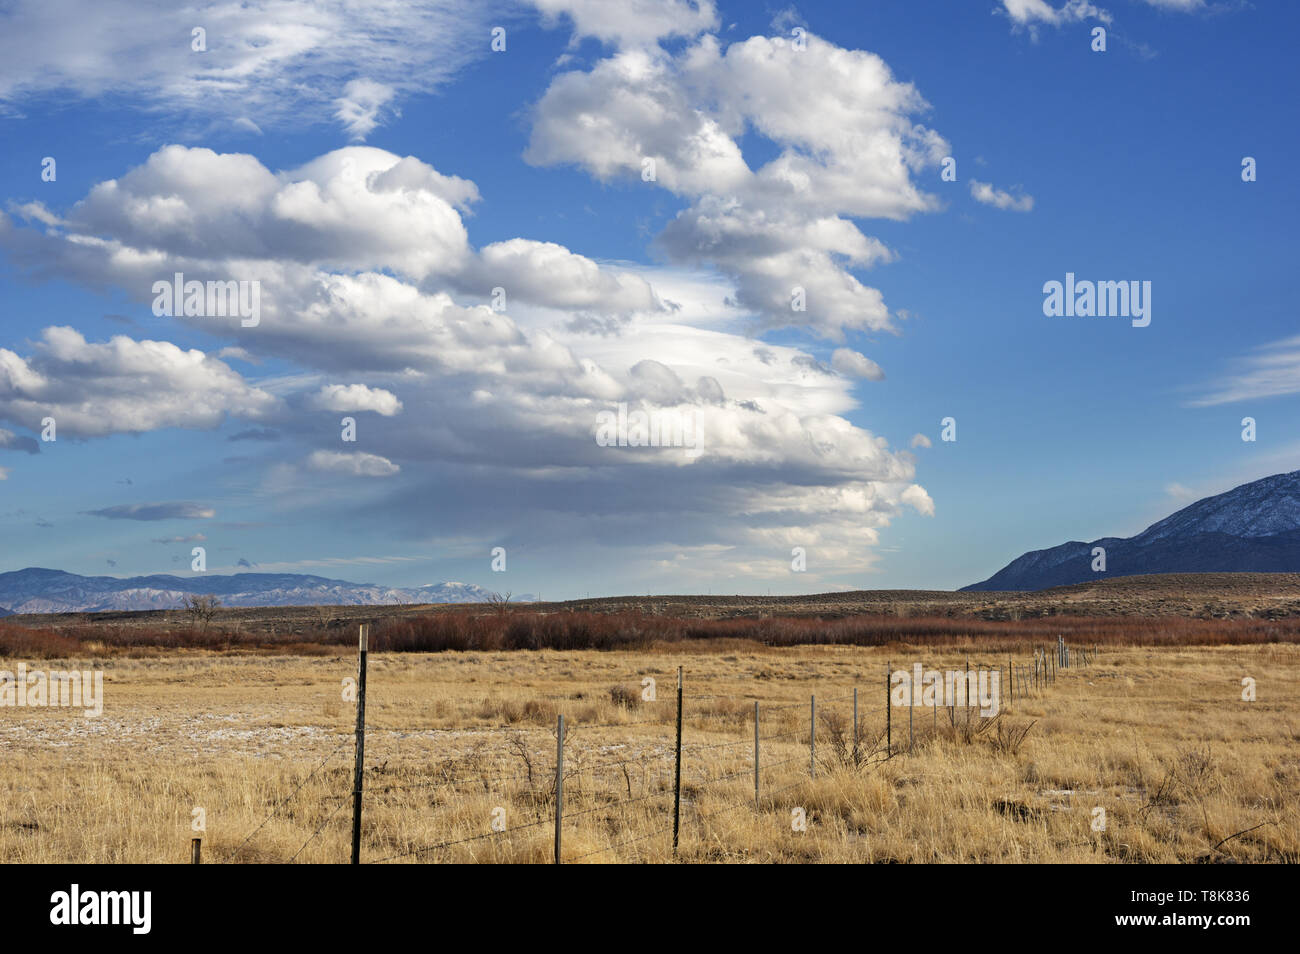 barbed wire fence and wave cloud forming over the Owens Valley near Bishop California - Stock Image